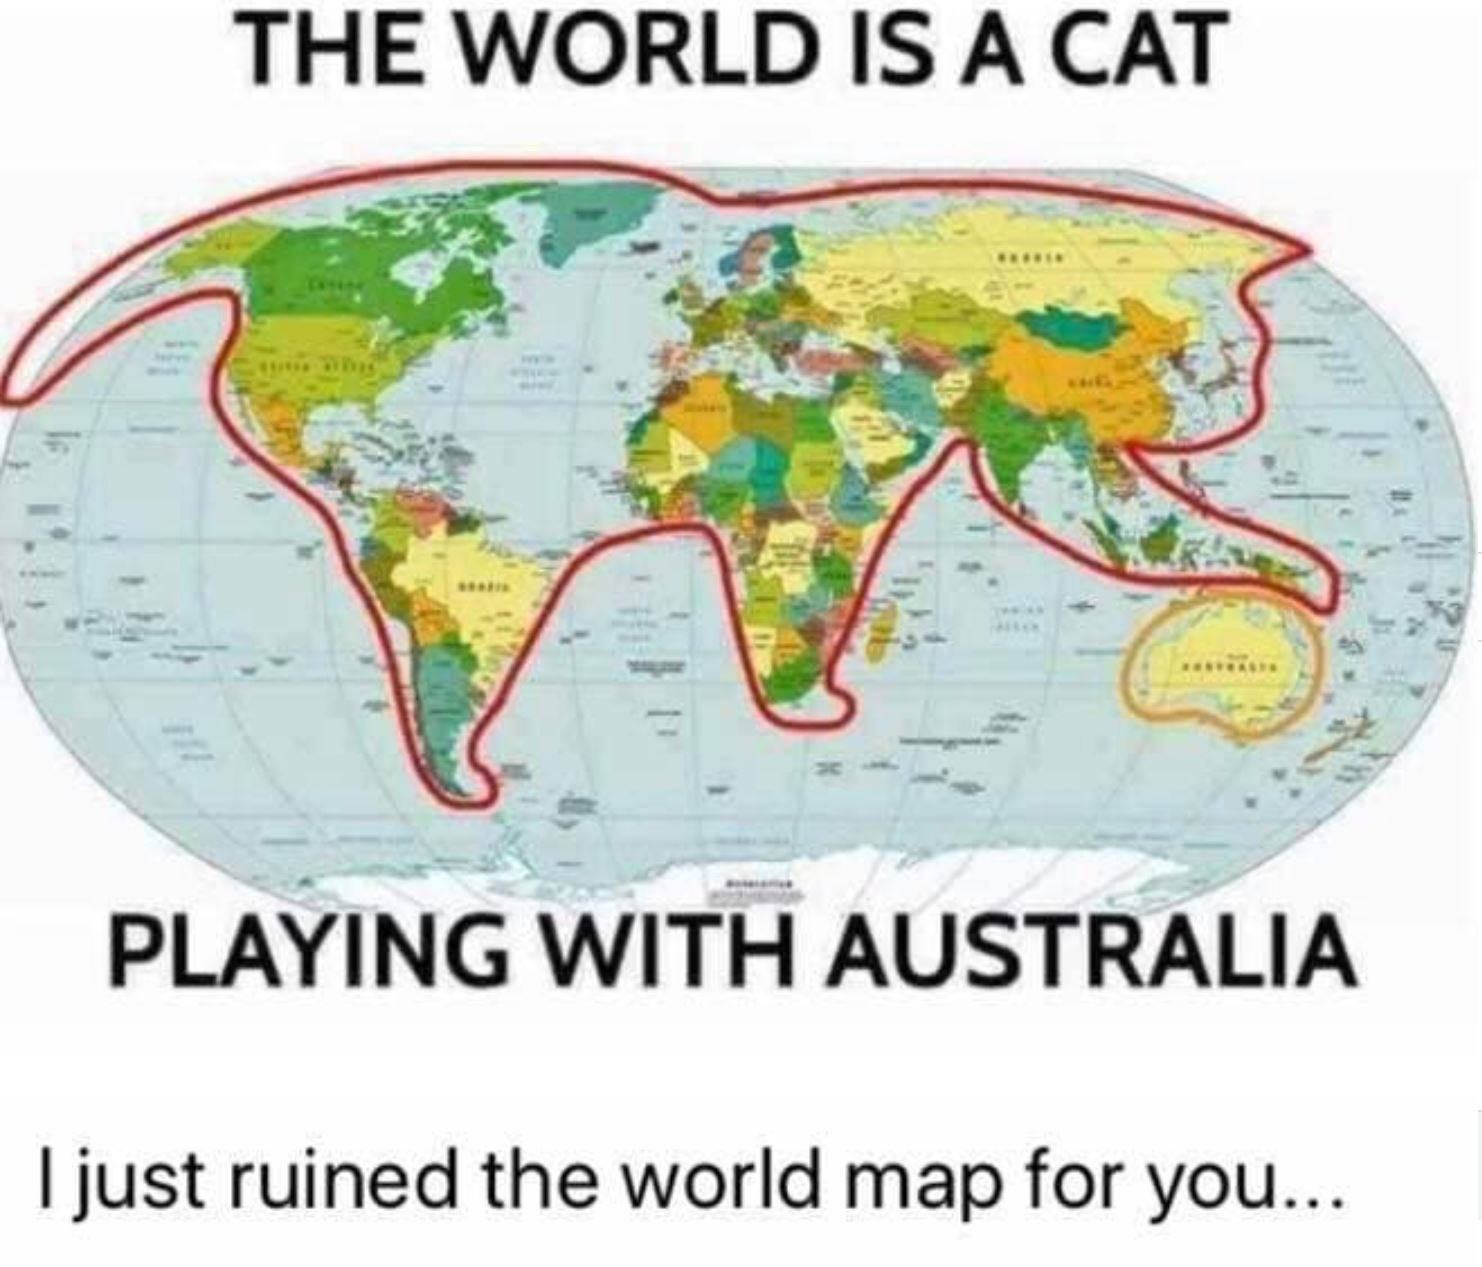 Map Of Australia Joke.Socalmountains Com Forums Jokes Funny Stupid Stories The